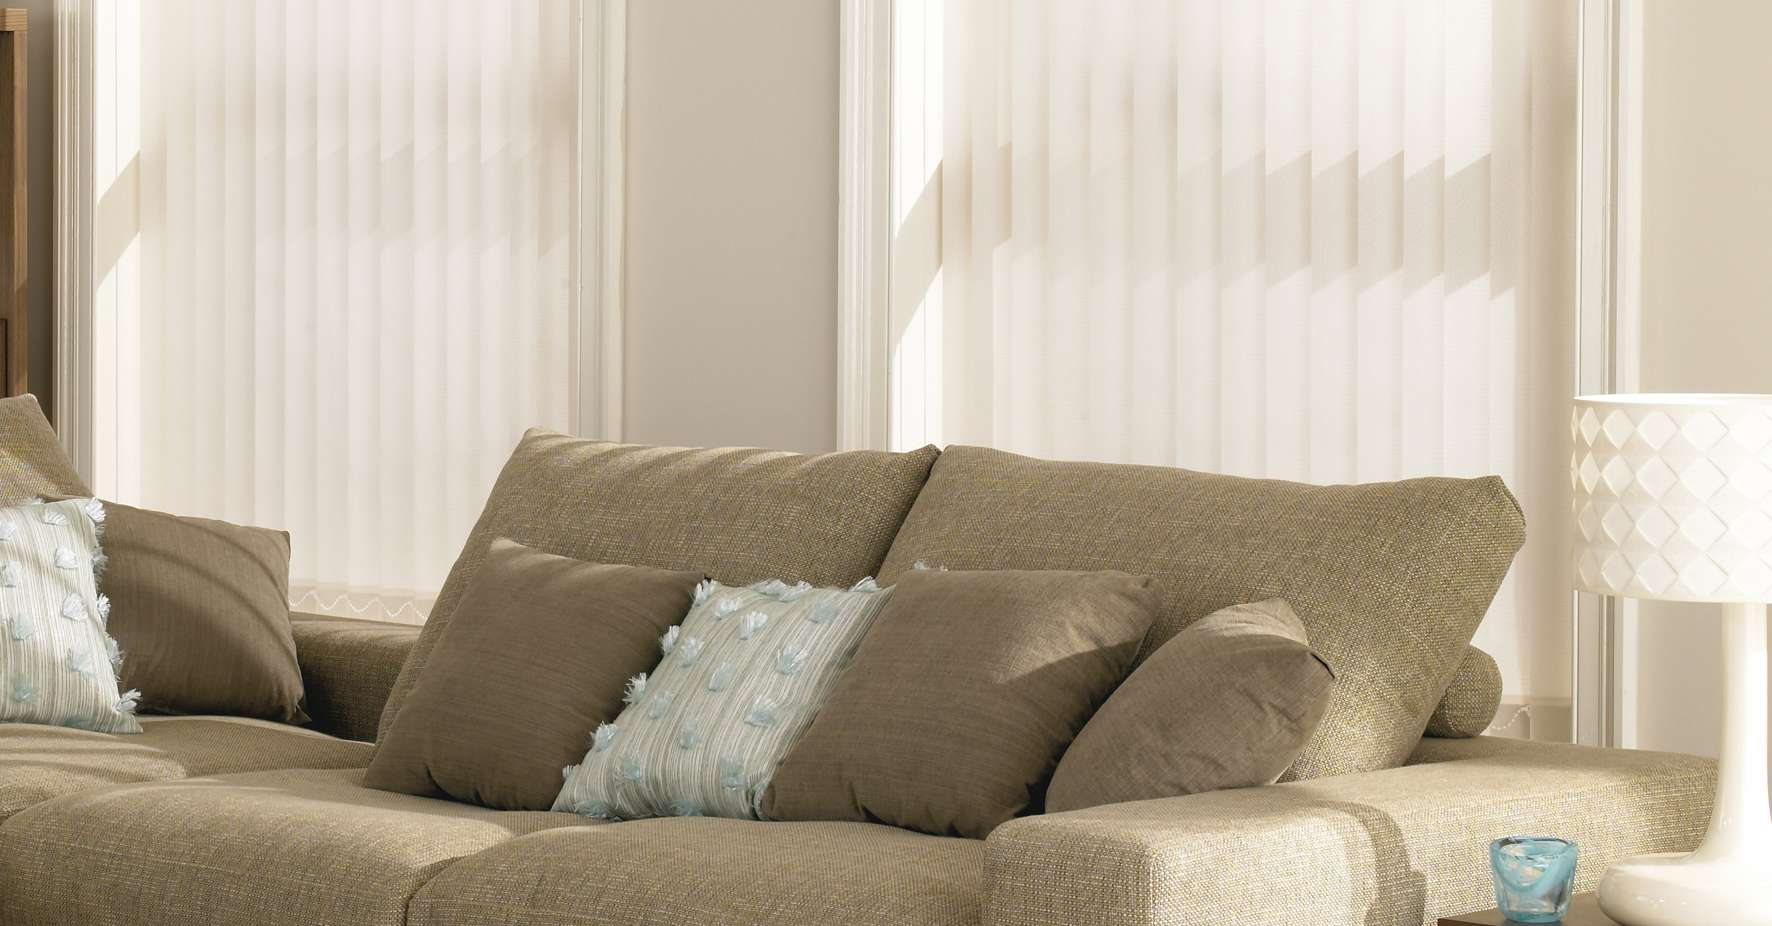 How To Buy Blinds.Best Blinds Buying Guide From Blind Experts Best Homes